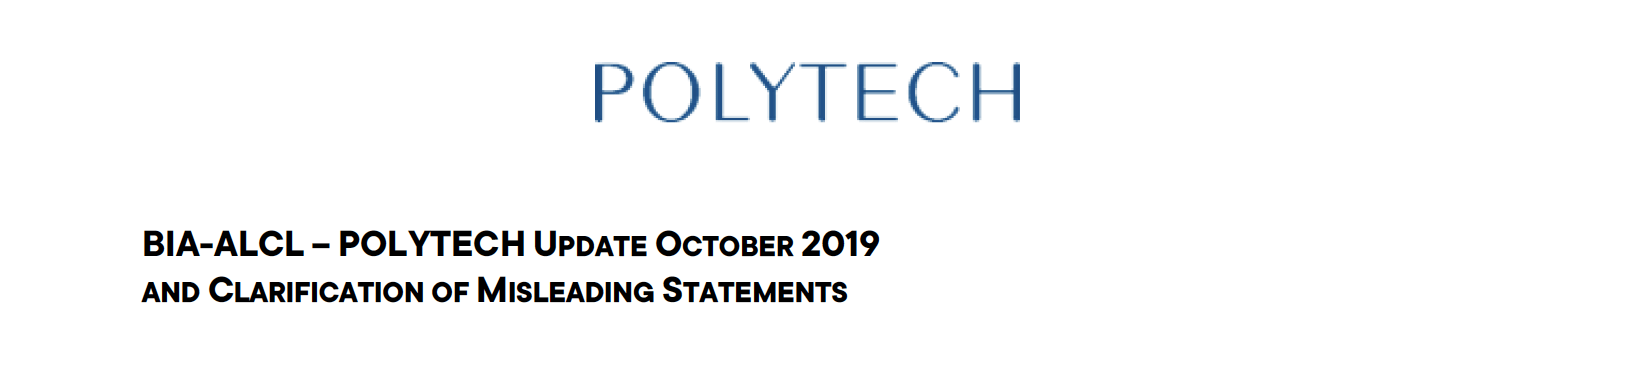 Wolfgang Steimel, CEO of POLYTECH, would like to explain the BIA-ALCL debate.